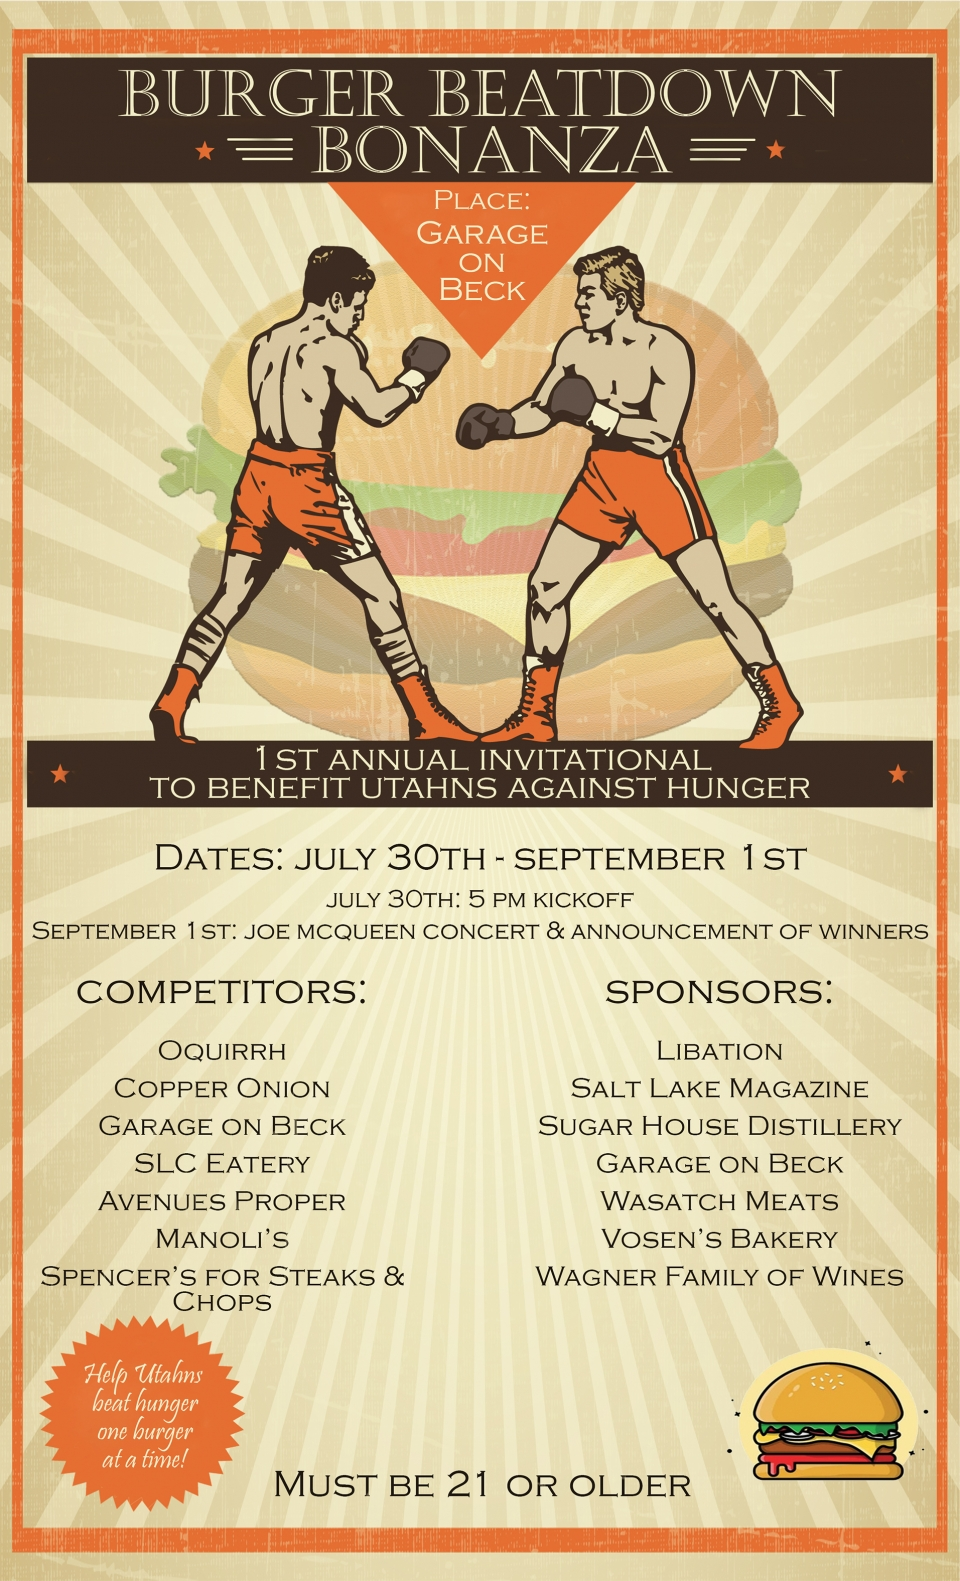 Support UAH at the Burger Beatdown Bonanza